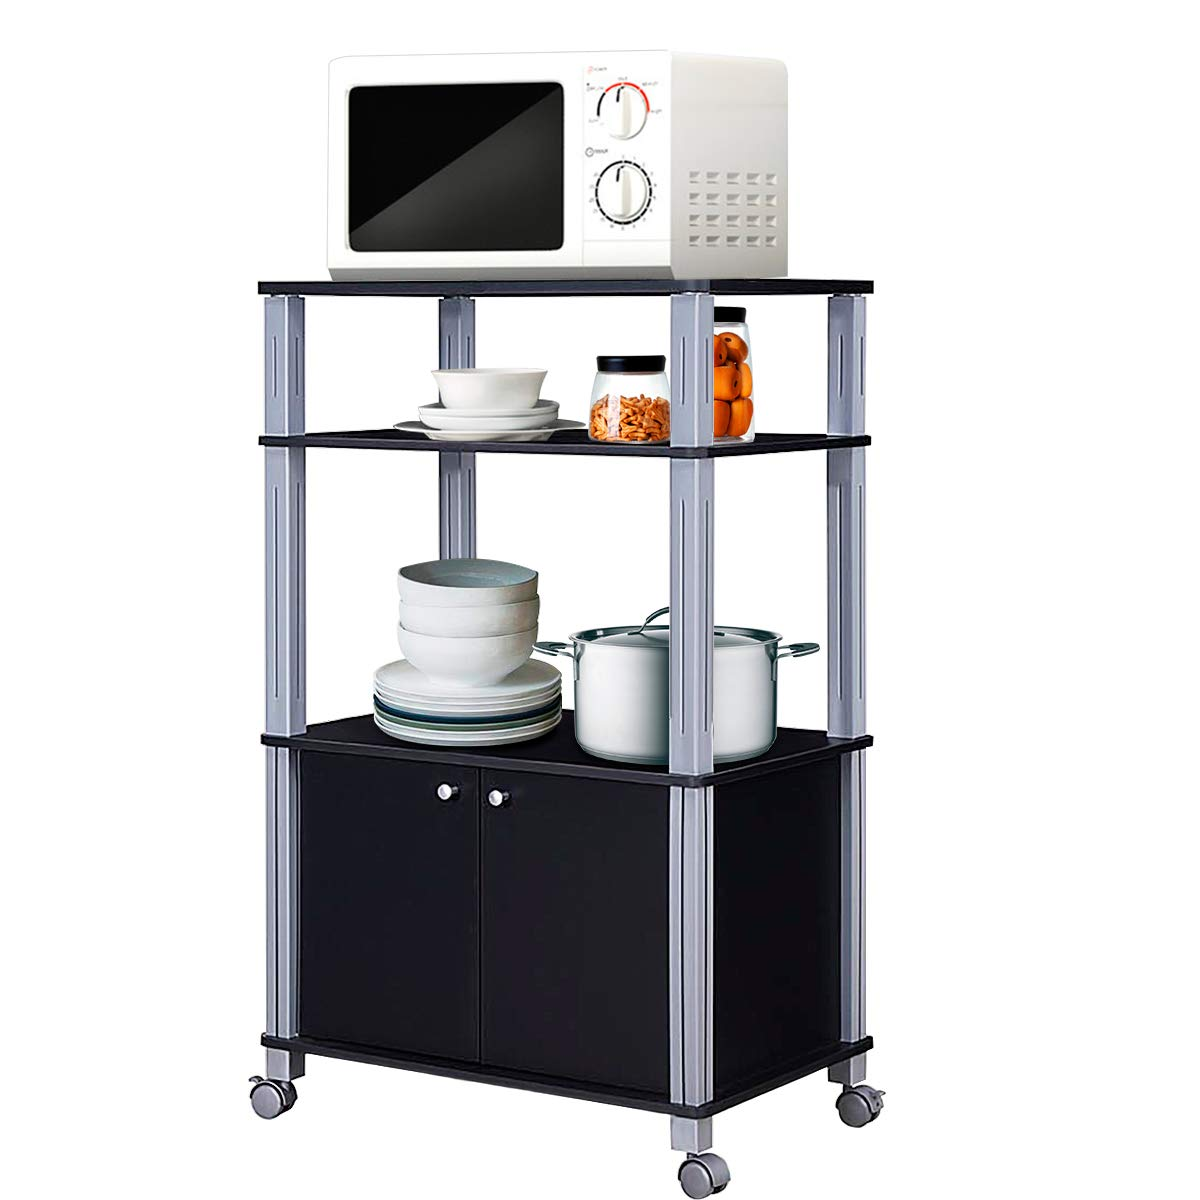 Giantex Rolling Kitchen Baker's Rack Microwave Oven Stand Utility Cart Multifunctional Display Shelf on Wheels with 2-Tier Shelf and Cabinet Spice Organizer for Kitchen Dining Room Furniture (Black) by Giantex (Image #1)